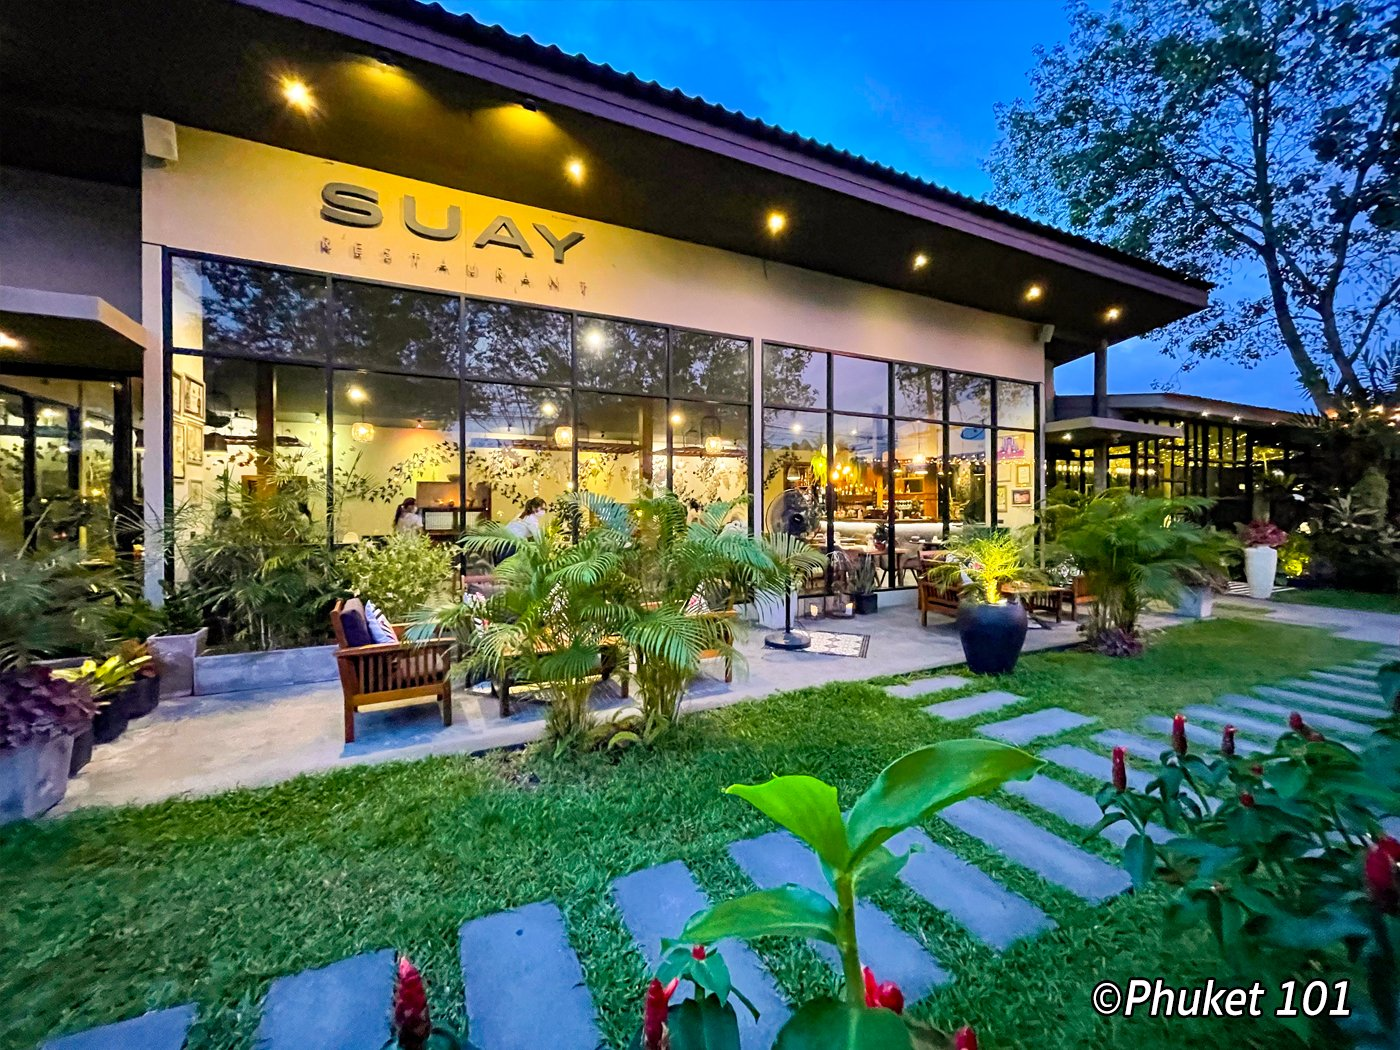 Suay Restaurant Cherngtalay in Phuket